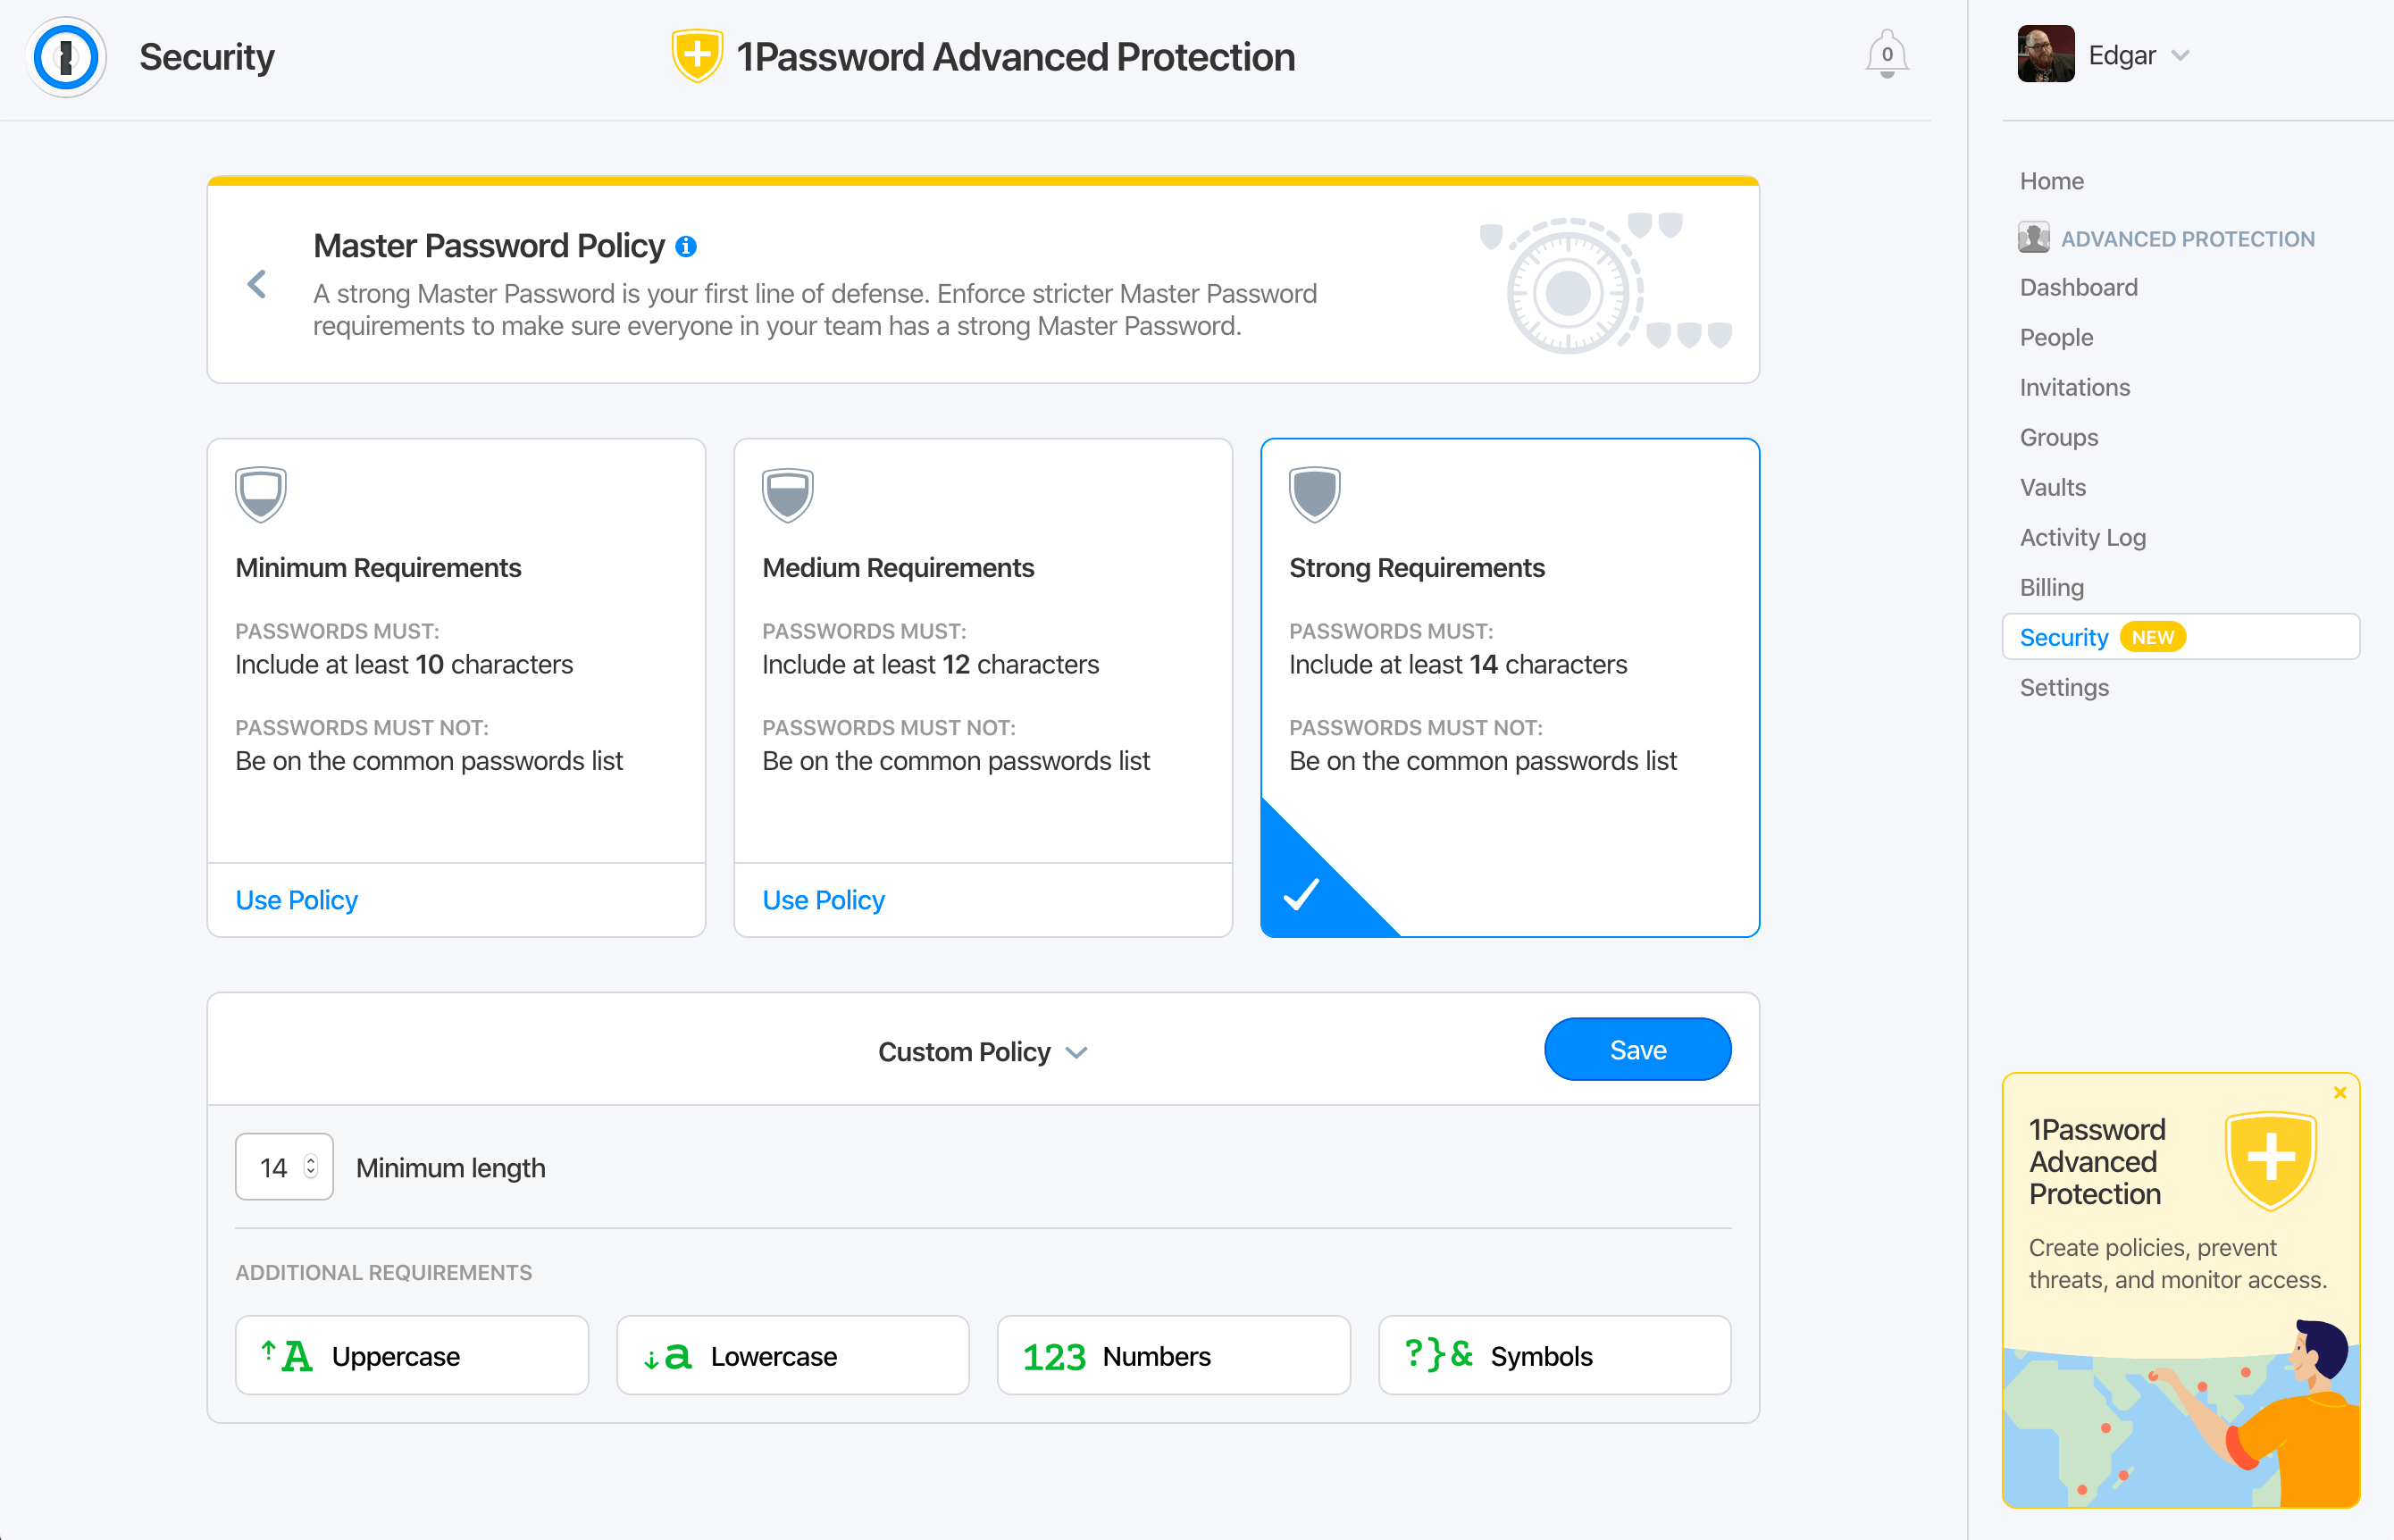 Screenshot of Master Password Policy controls in 1Password Advanced Protection